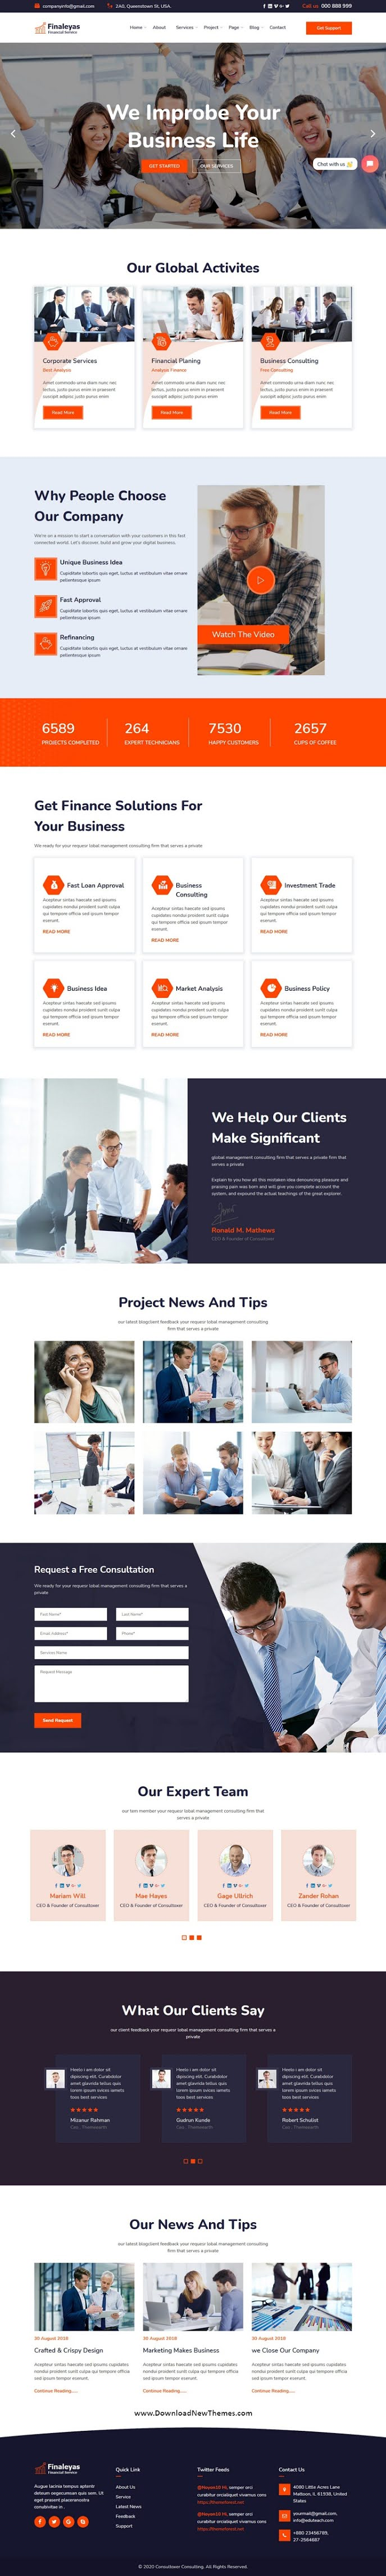 Corporate & Financial Business Template